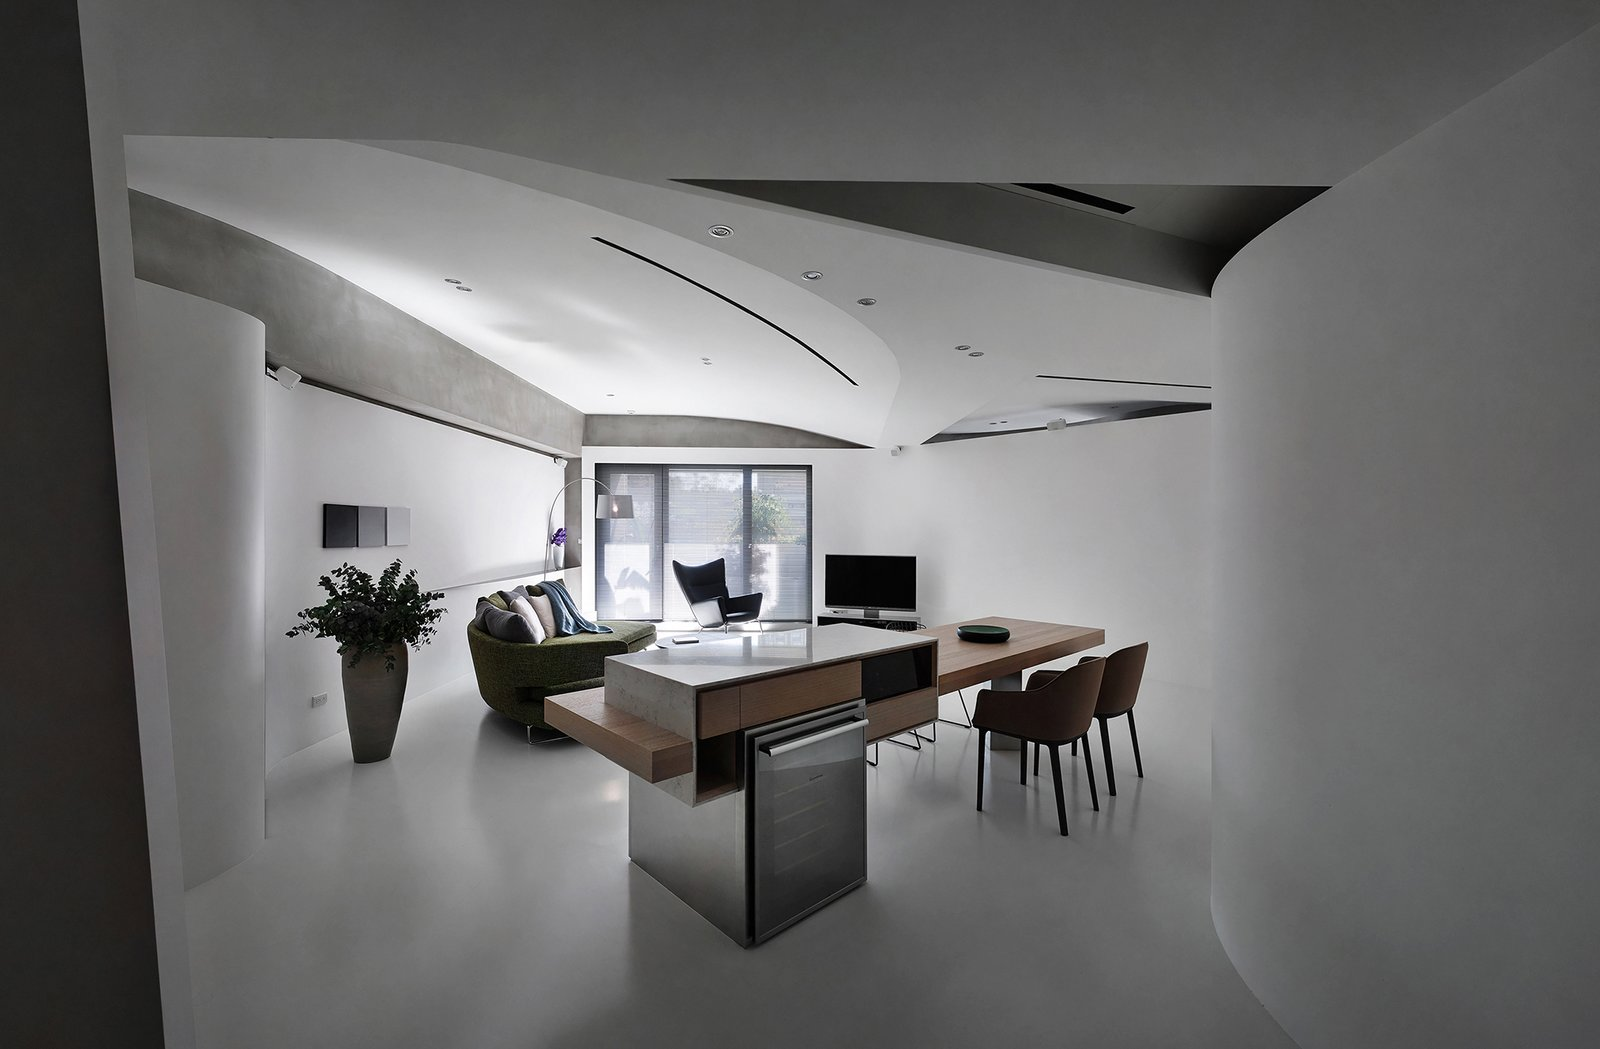 Living Room, Bar, Table, Chair, Sofa, Wall Lighting, Ceiling Lighting, Lamps, and Concrete Floor When entering the house, one could easily perceive its fluidity at the first glance.  Fluid House